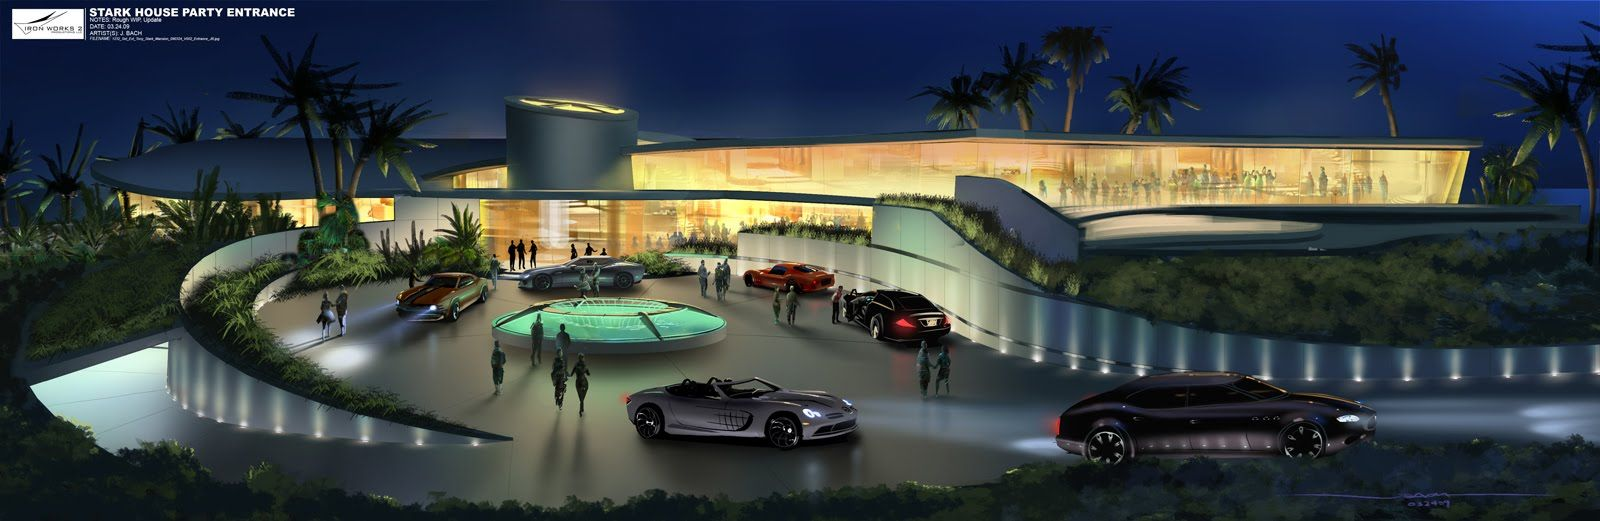 Iron Man 2 Concept Art Celebration House Front Mansion And Front Doors